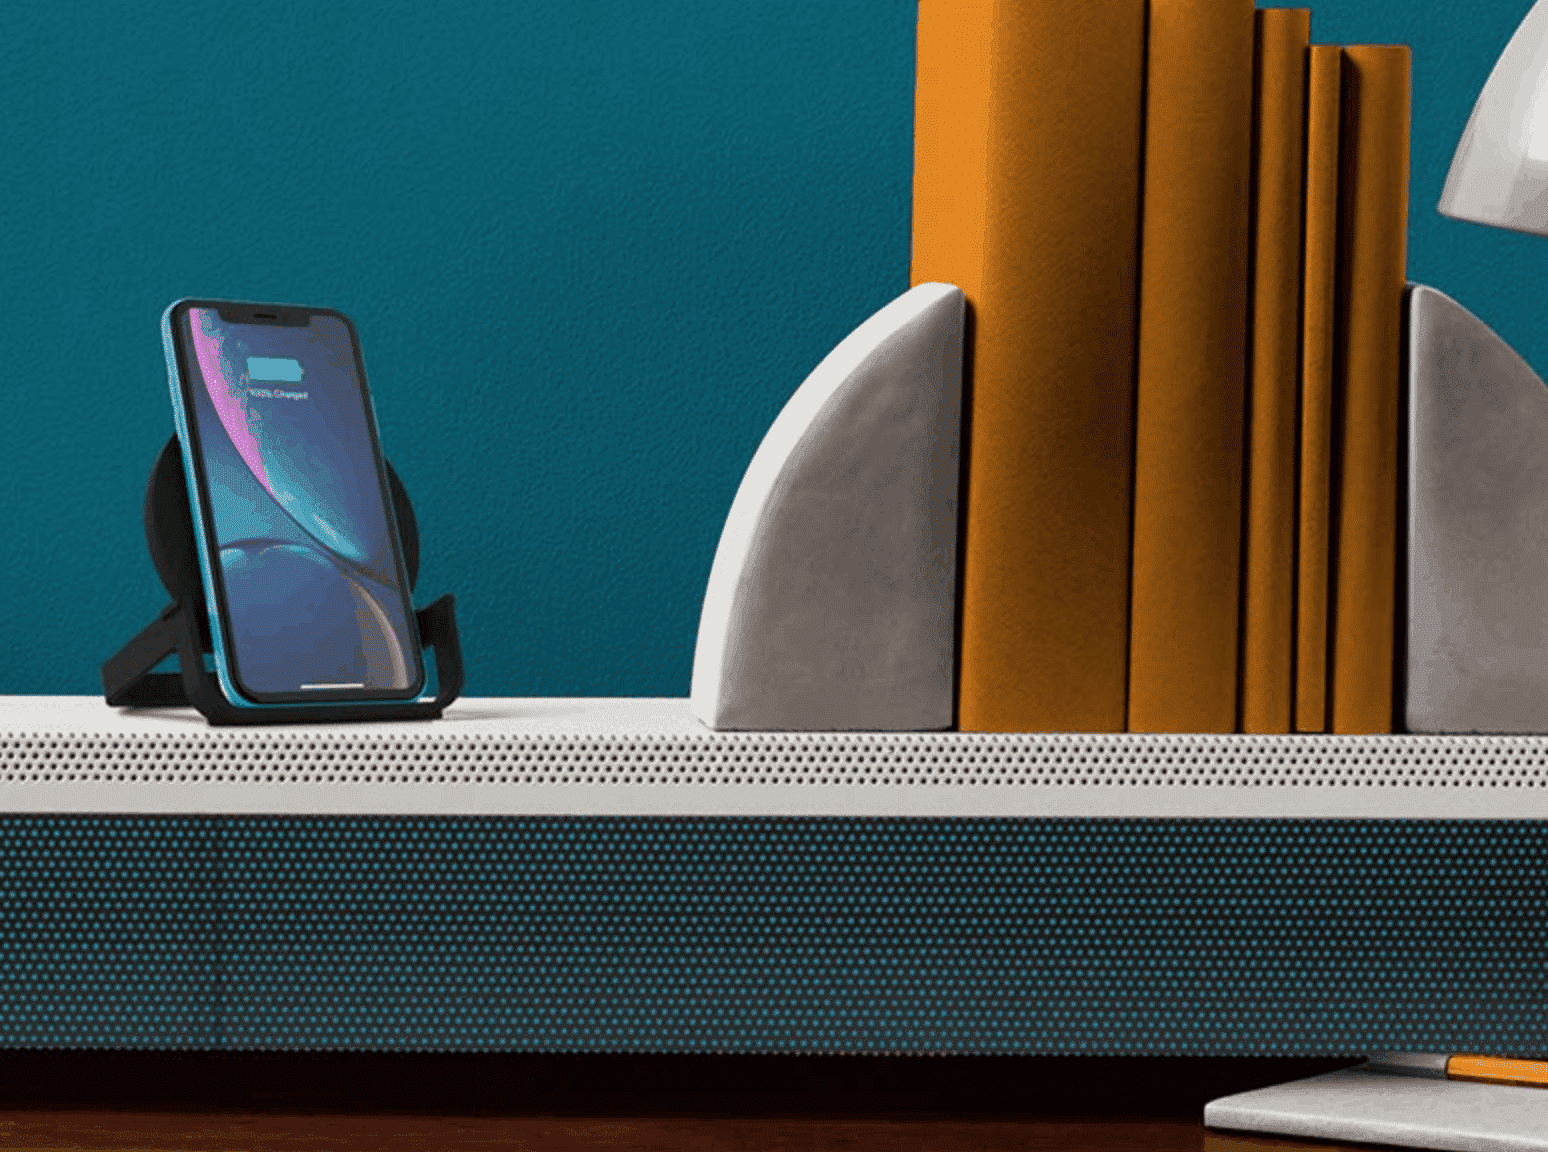 Wireless Charging Stand from Belkin